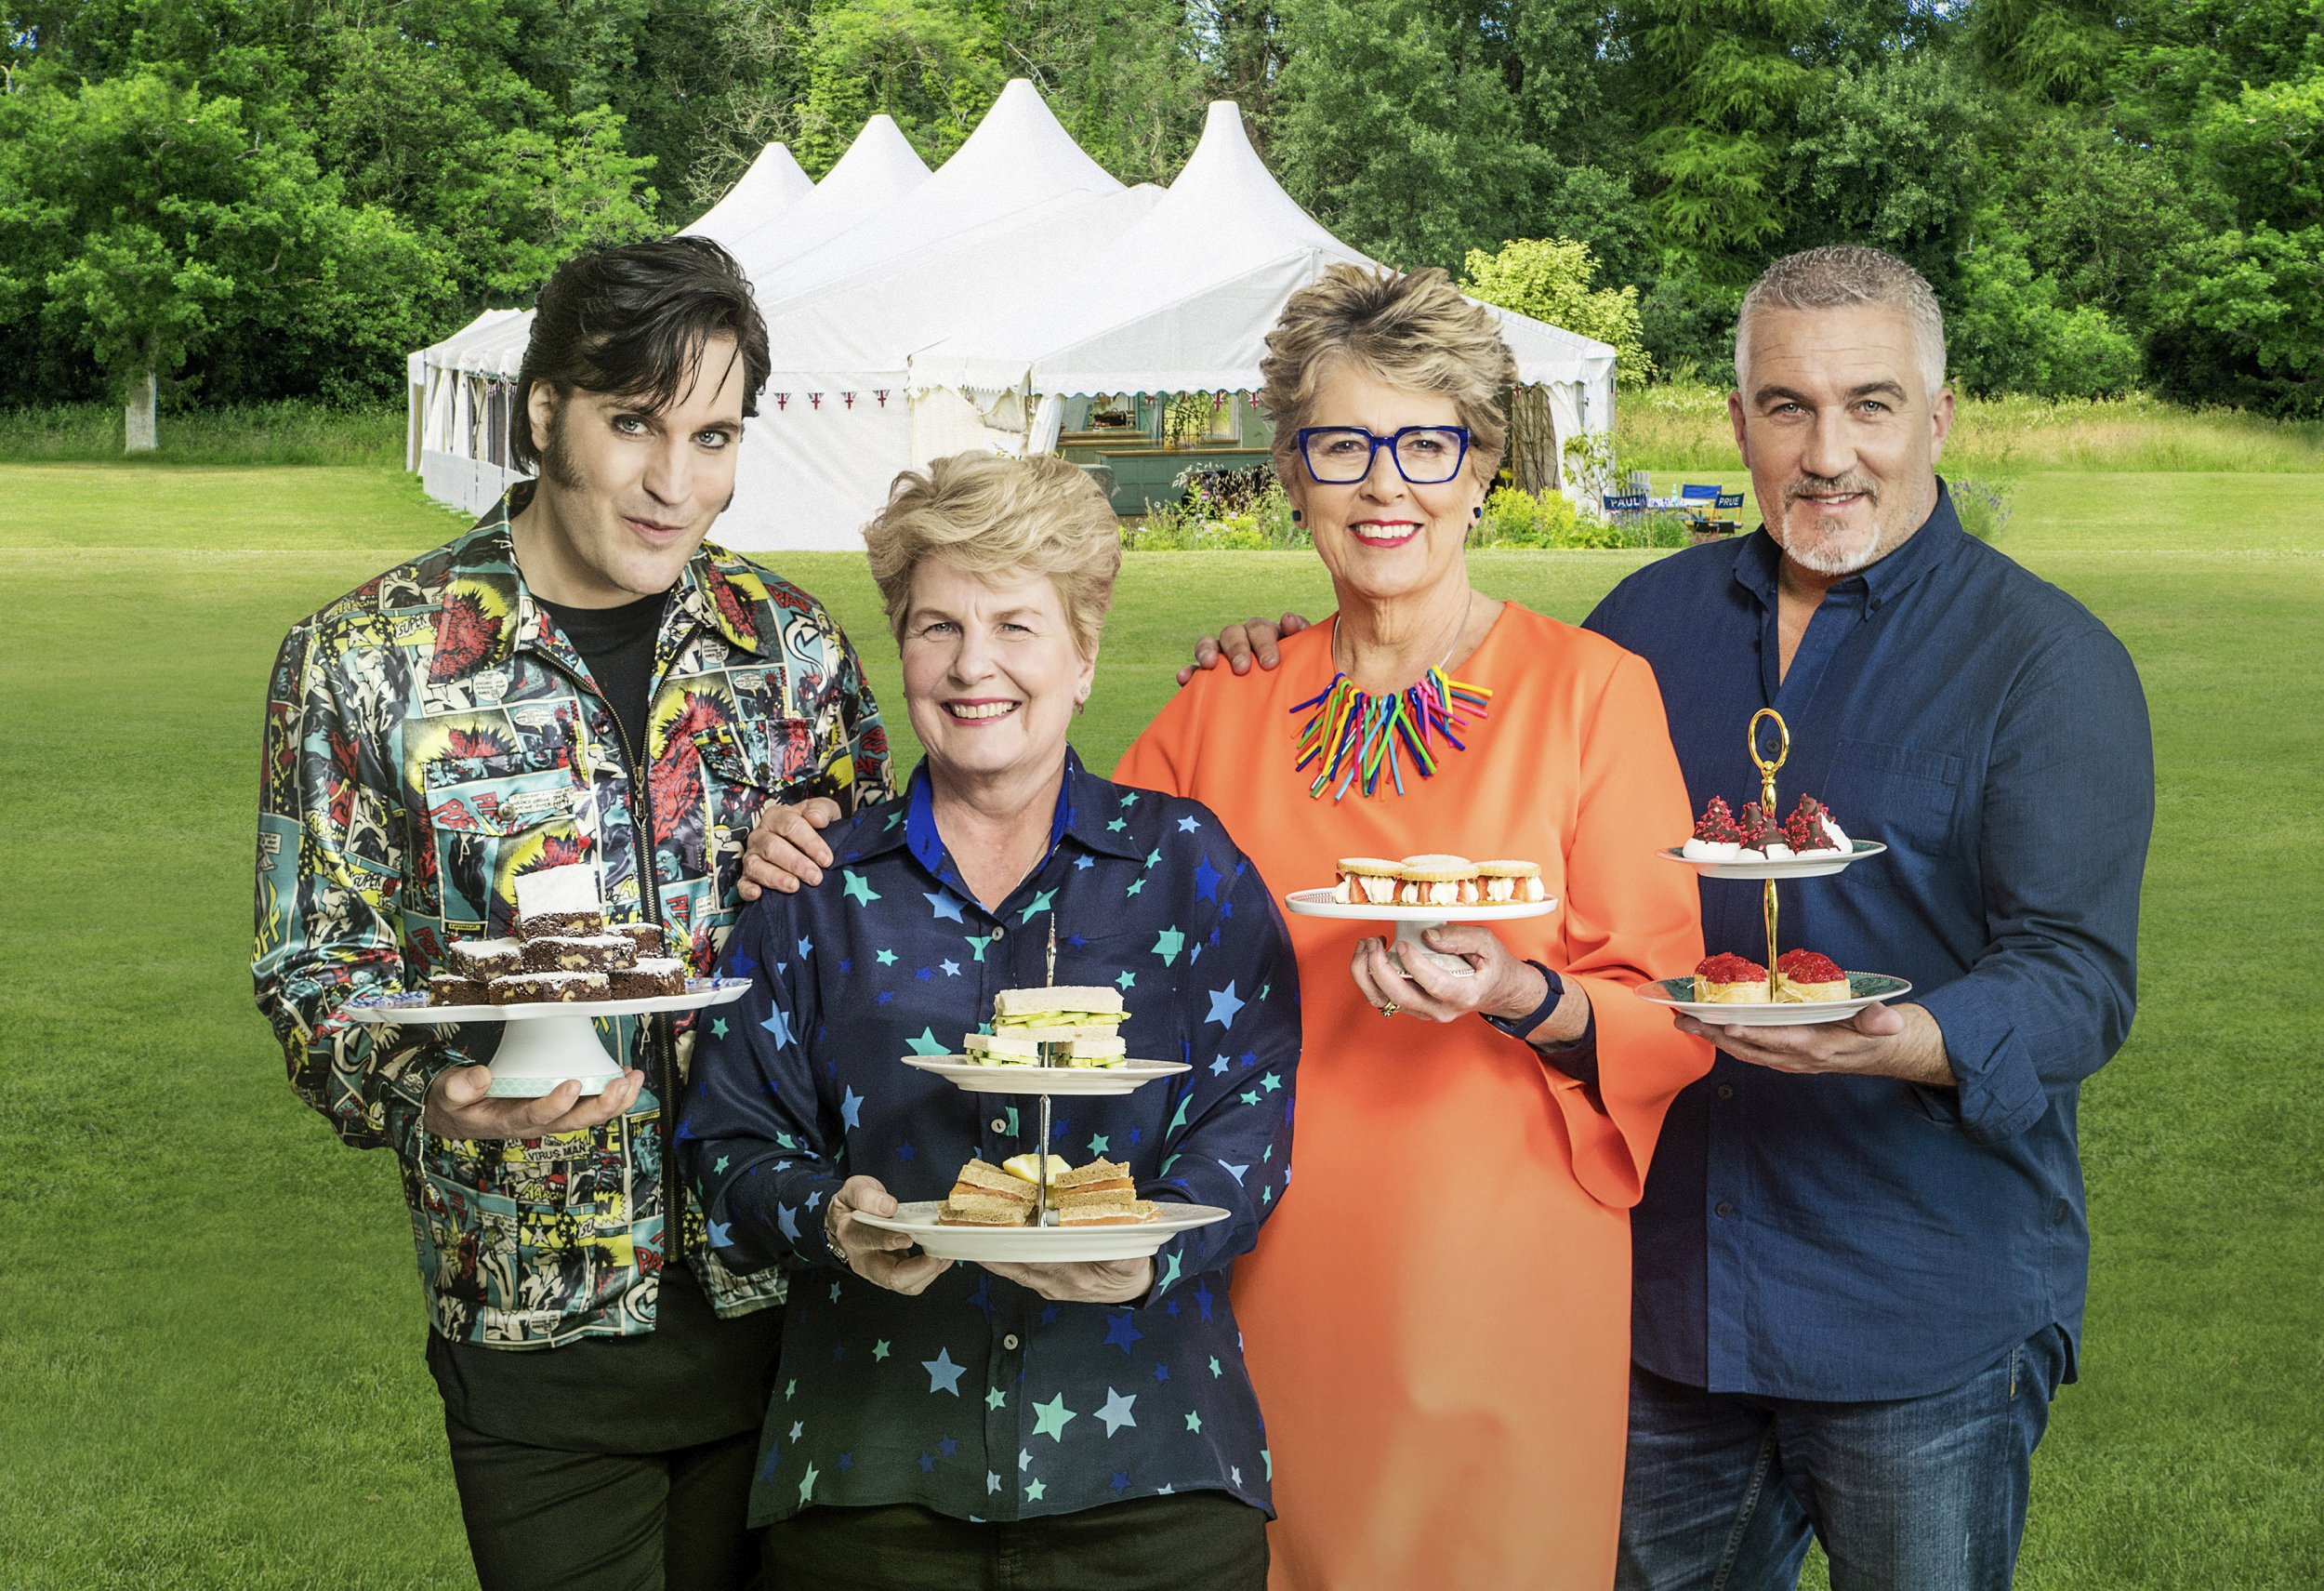 Great British Bake Off's 'egotist' Prue Leith loves fame the show has brought her